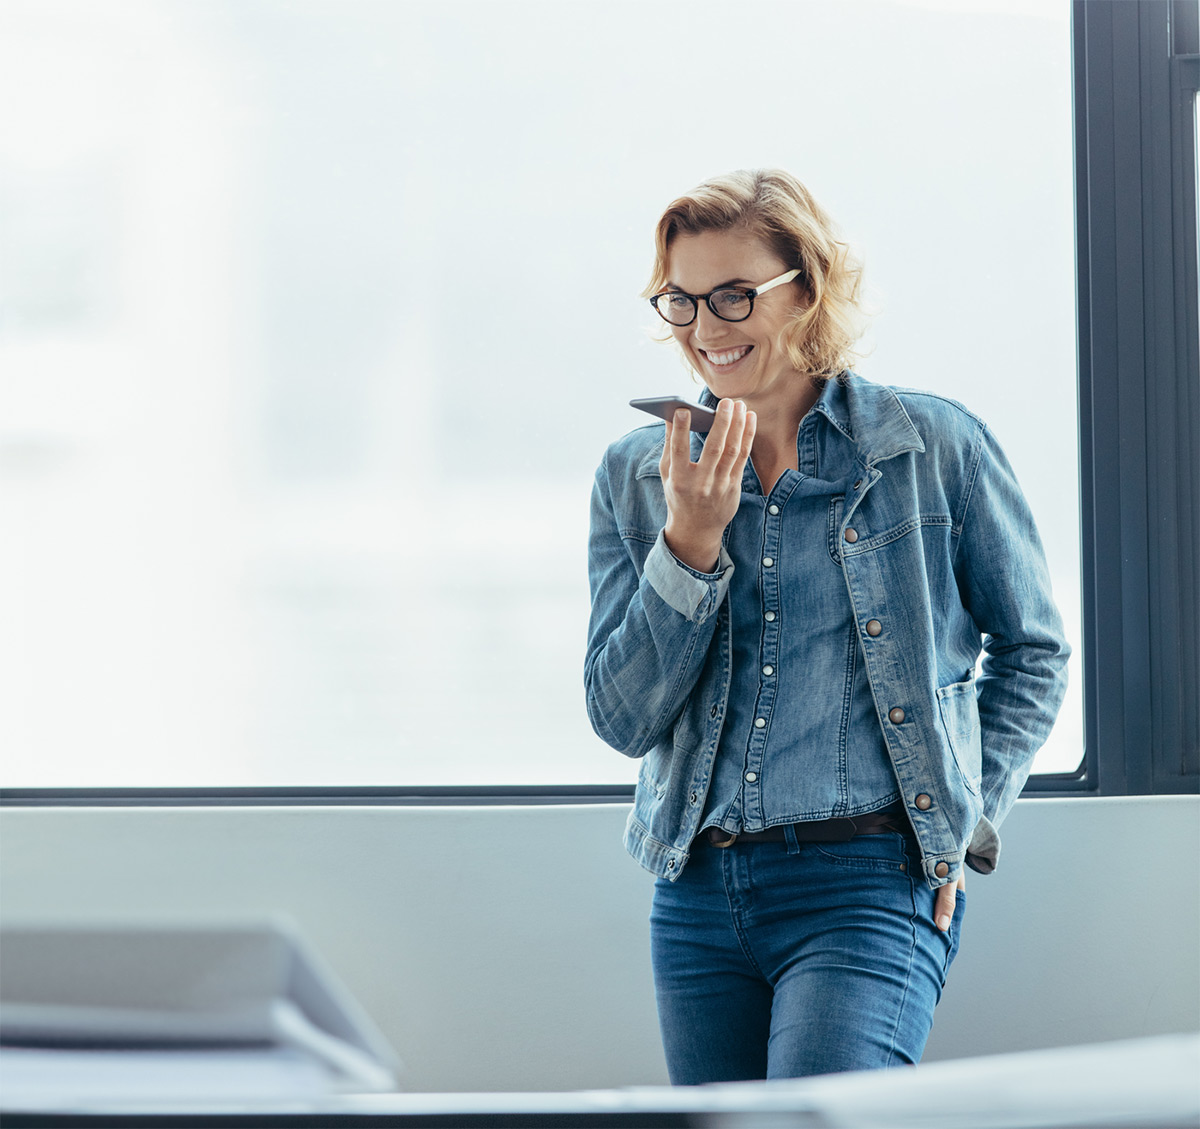 https://tickertapecdn.tdameritrade.com/assets/images/pages/md/Woman talking on smartphone